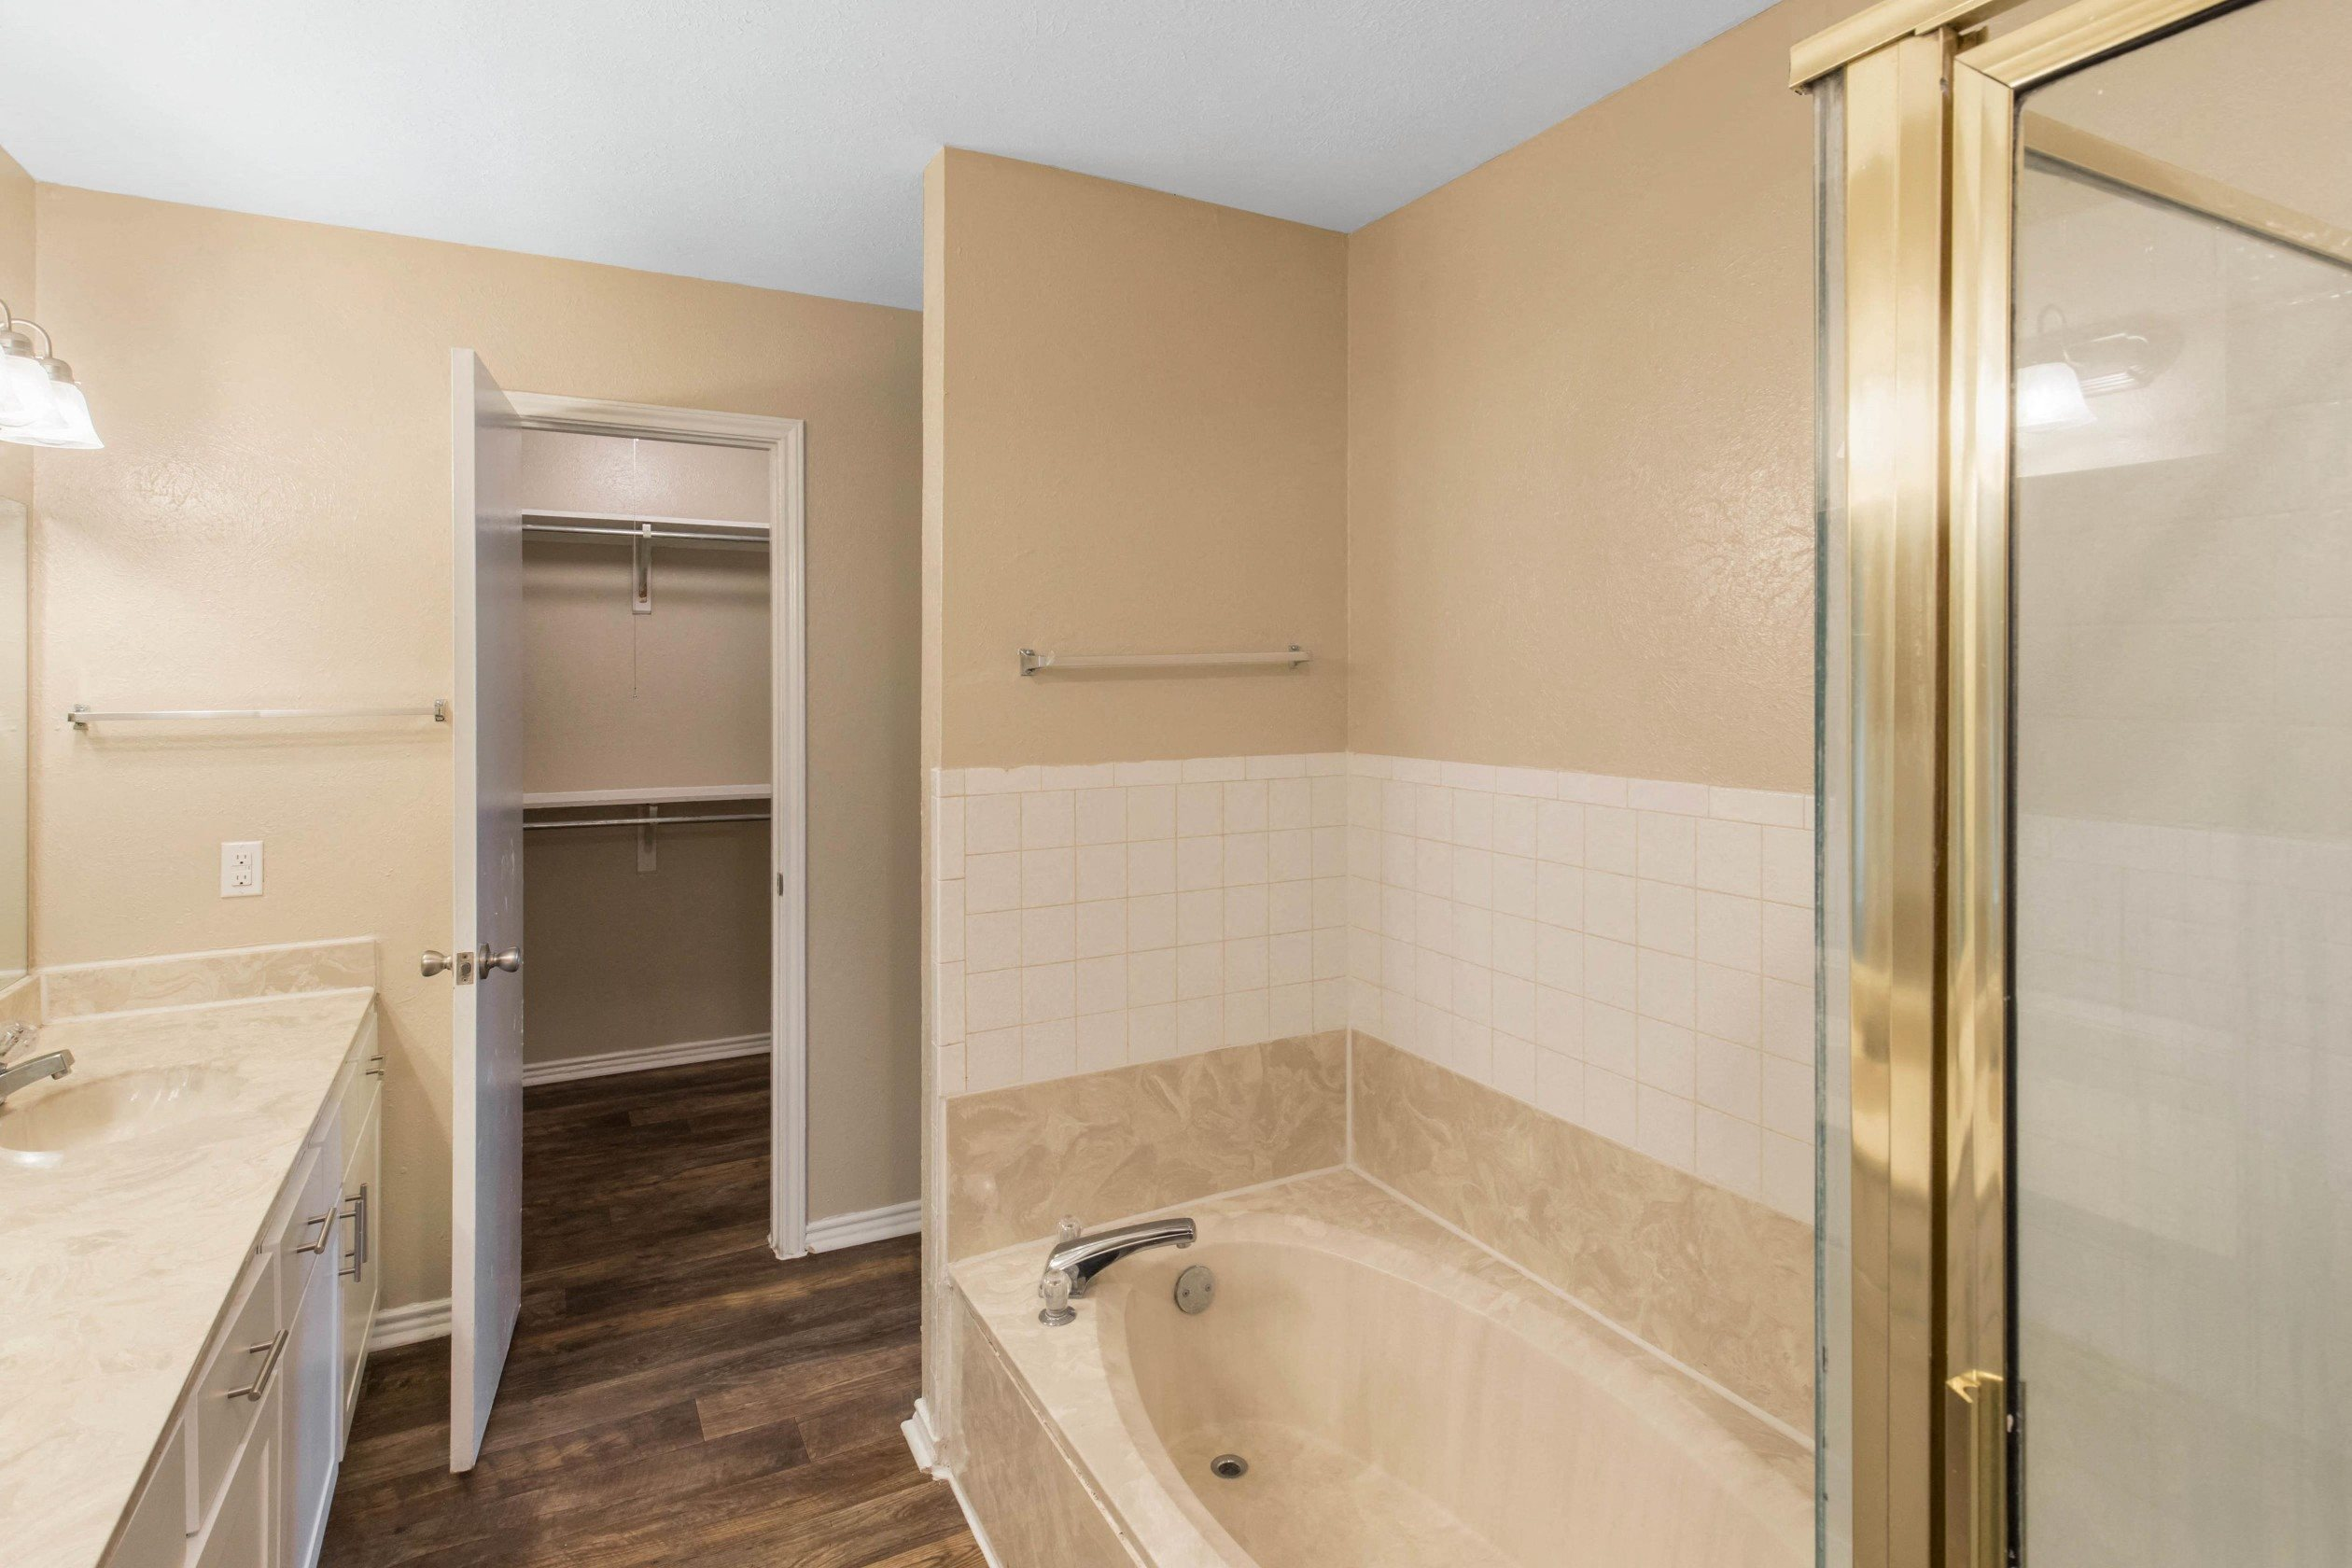 Lake Village West Apartments Garland, TX Bathroom with Standup Shower